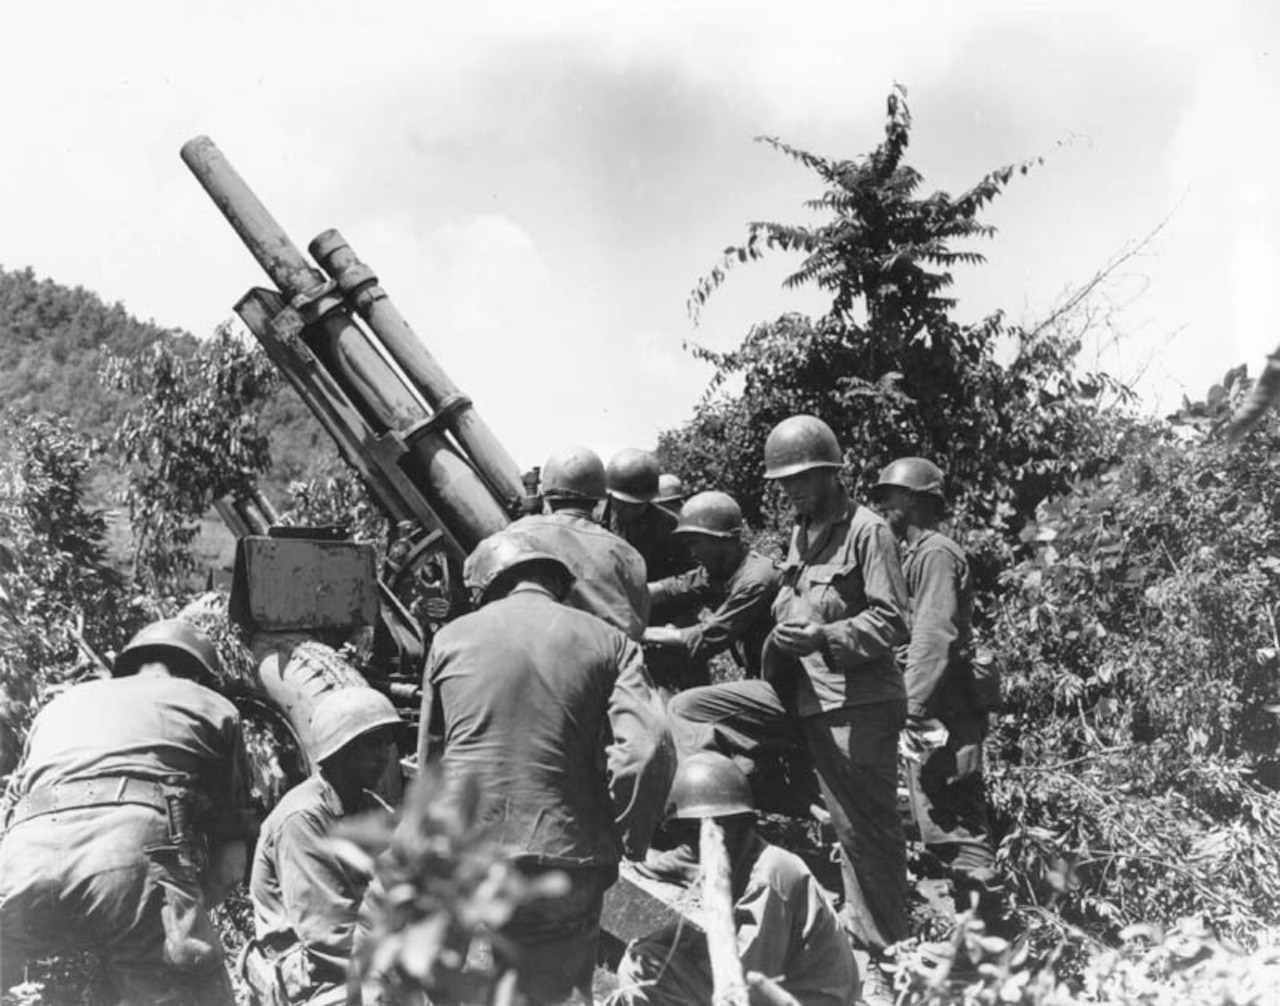 Service members in combat gear surround a gun shrouded in tall shrubs.